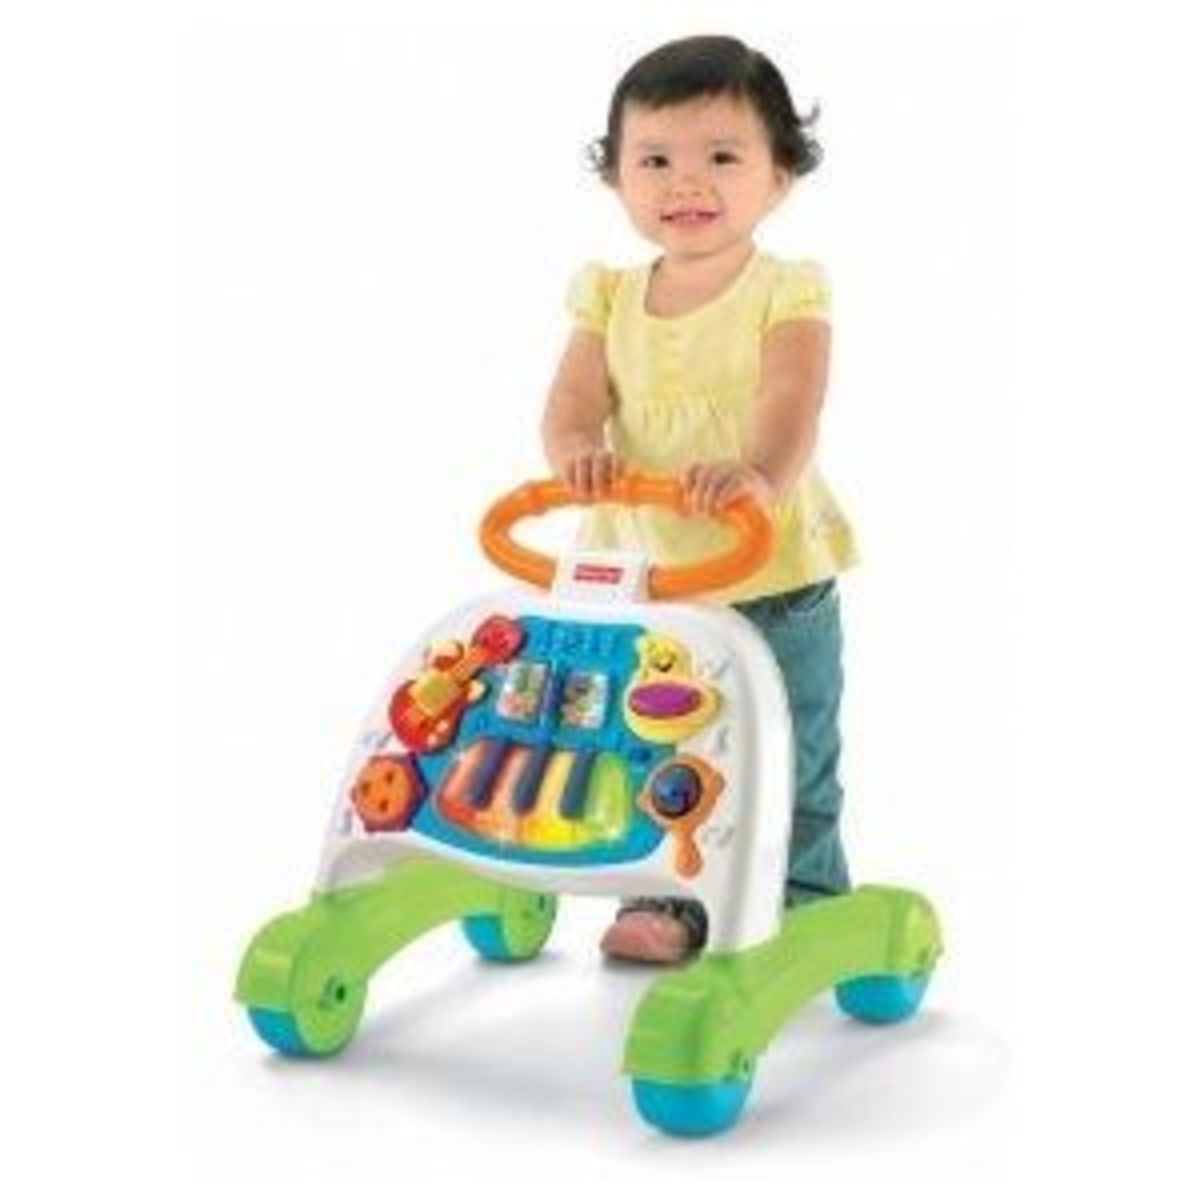 Best Learning Toys for 1 Year Olds